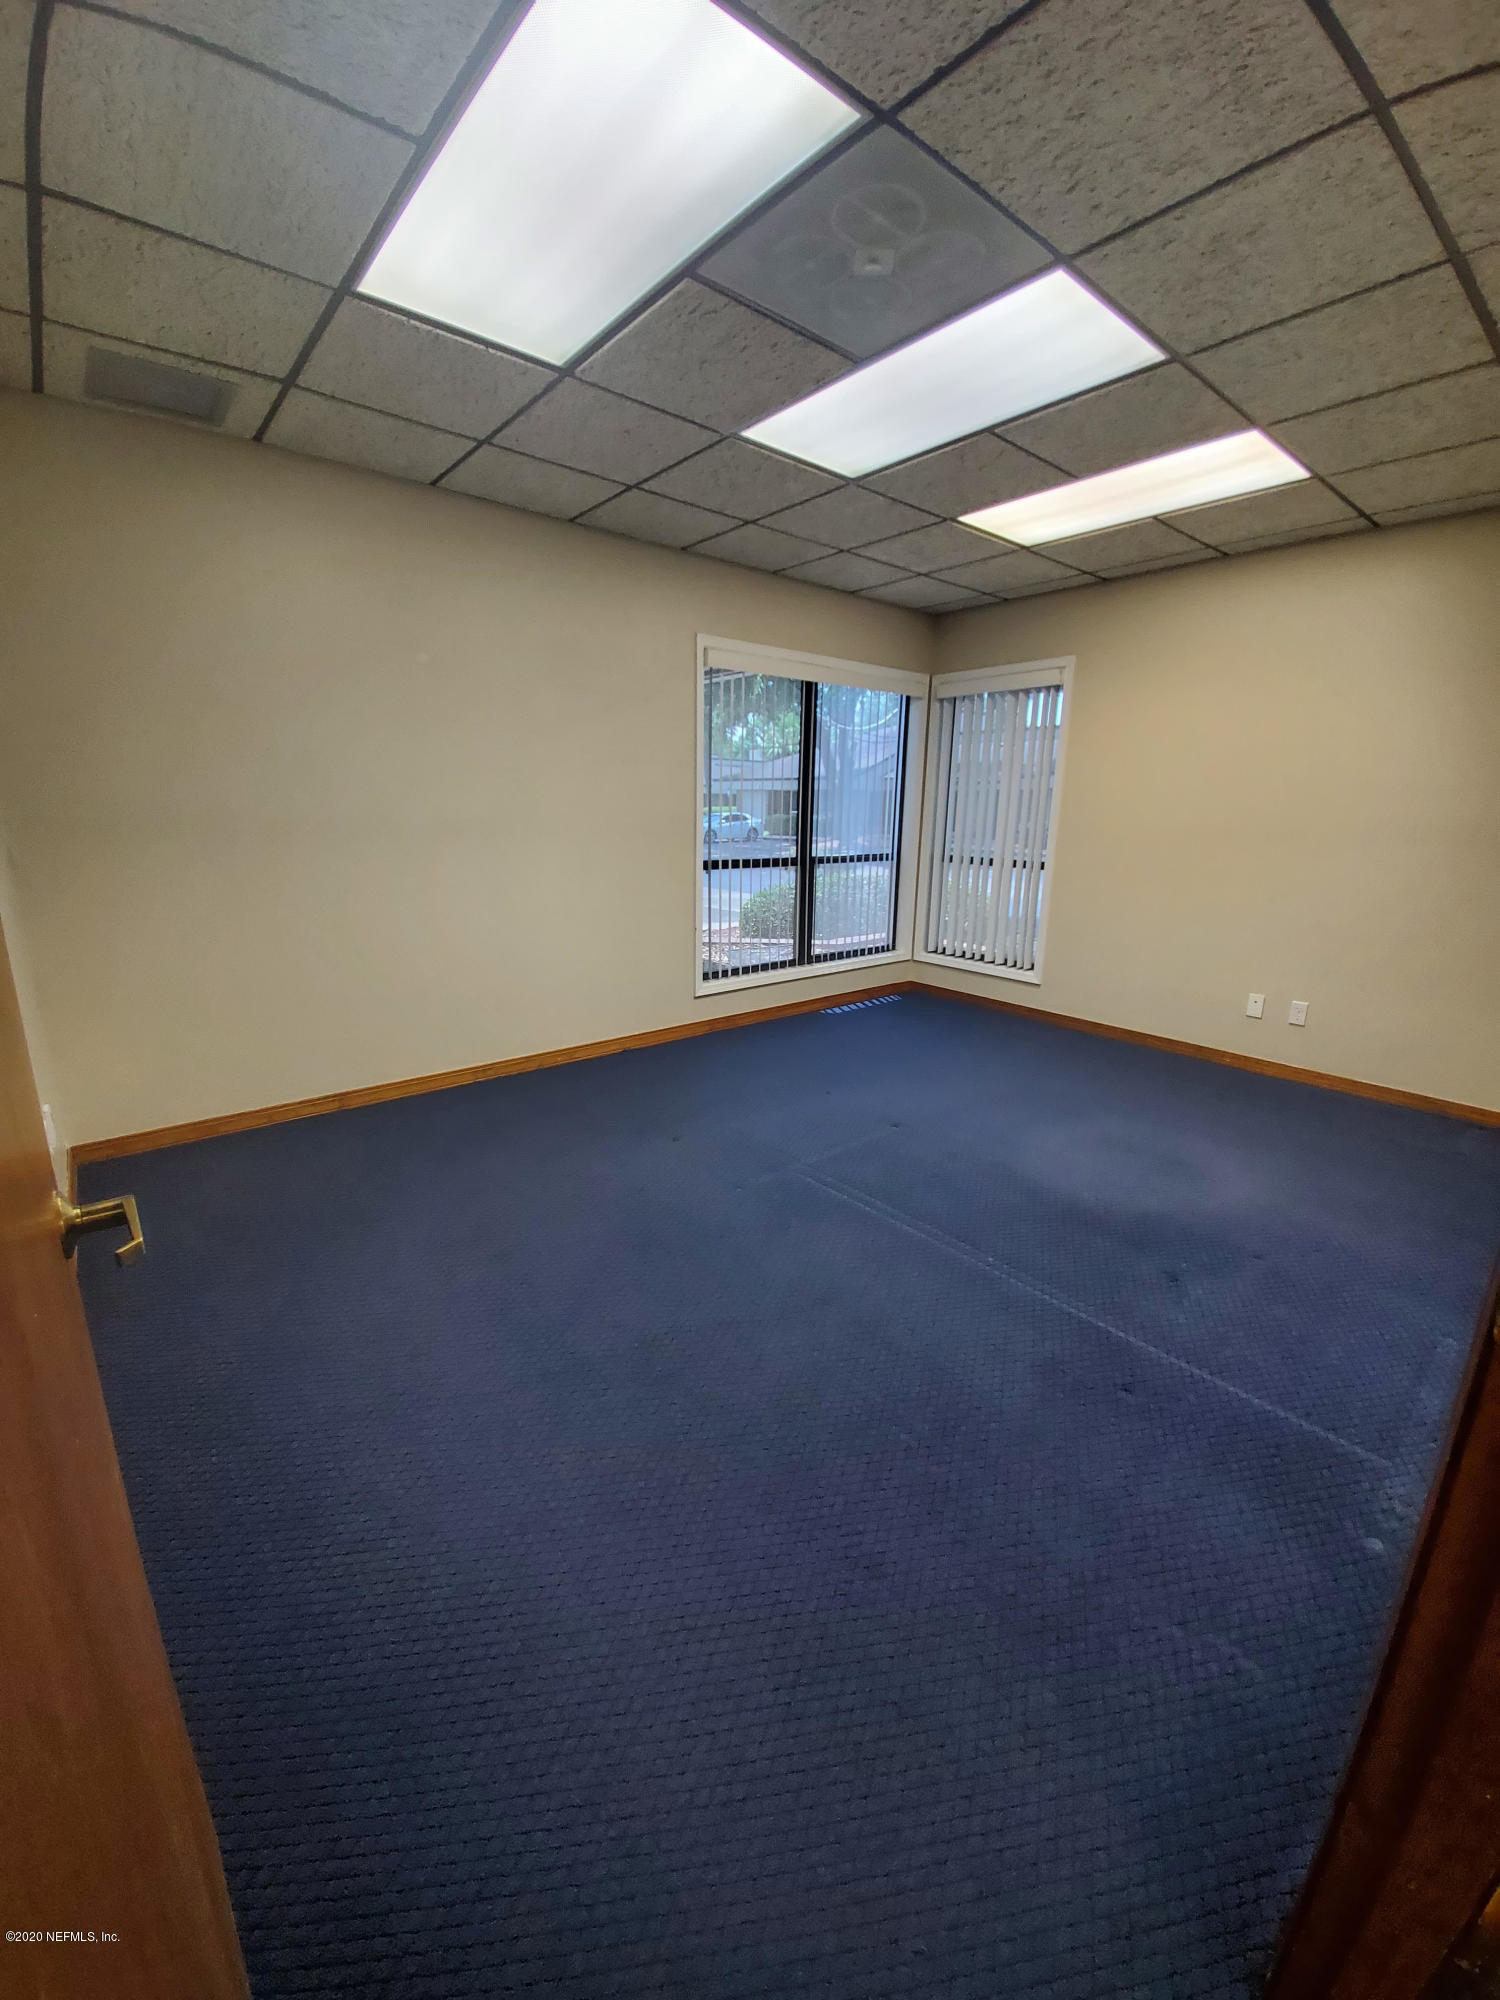 9471 BAYMEADOWS, JACKSONVILLE, FLORIDA 32256, ,Commercial,For sale,BAYMEADOWS,1048807